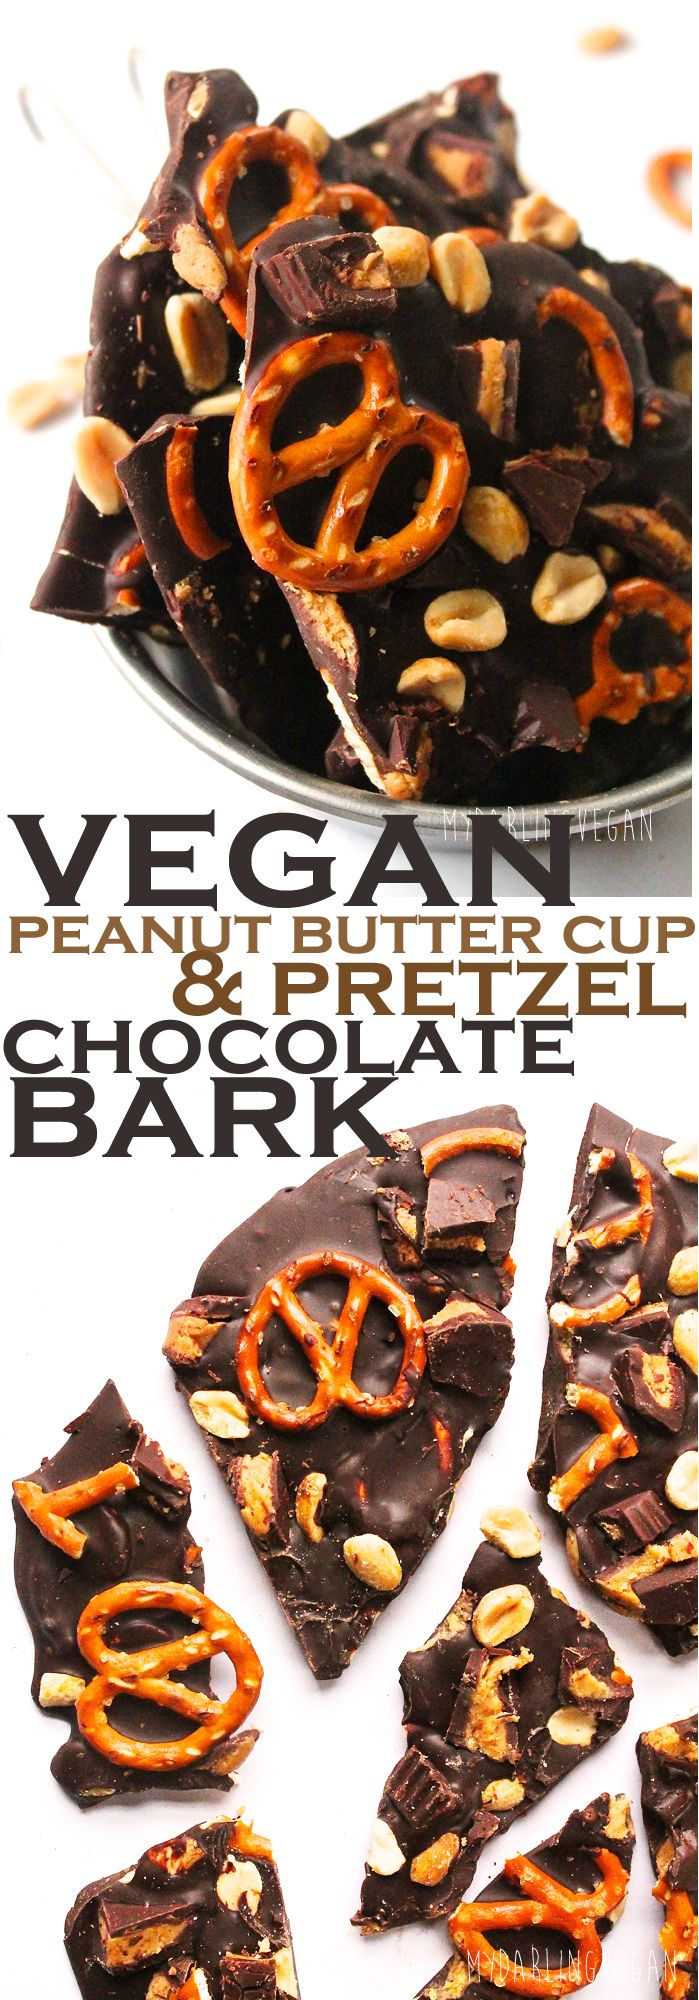 A decadent and easy Peanut Butter Cup and Pretzel Chocolate Bark that you won't believe is vegan. Click the photo for the full recipe.